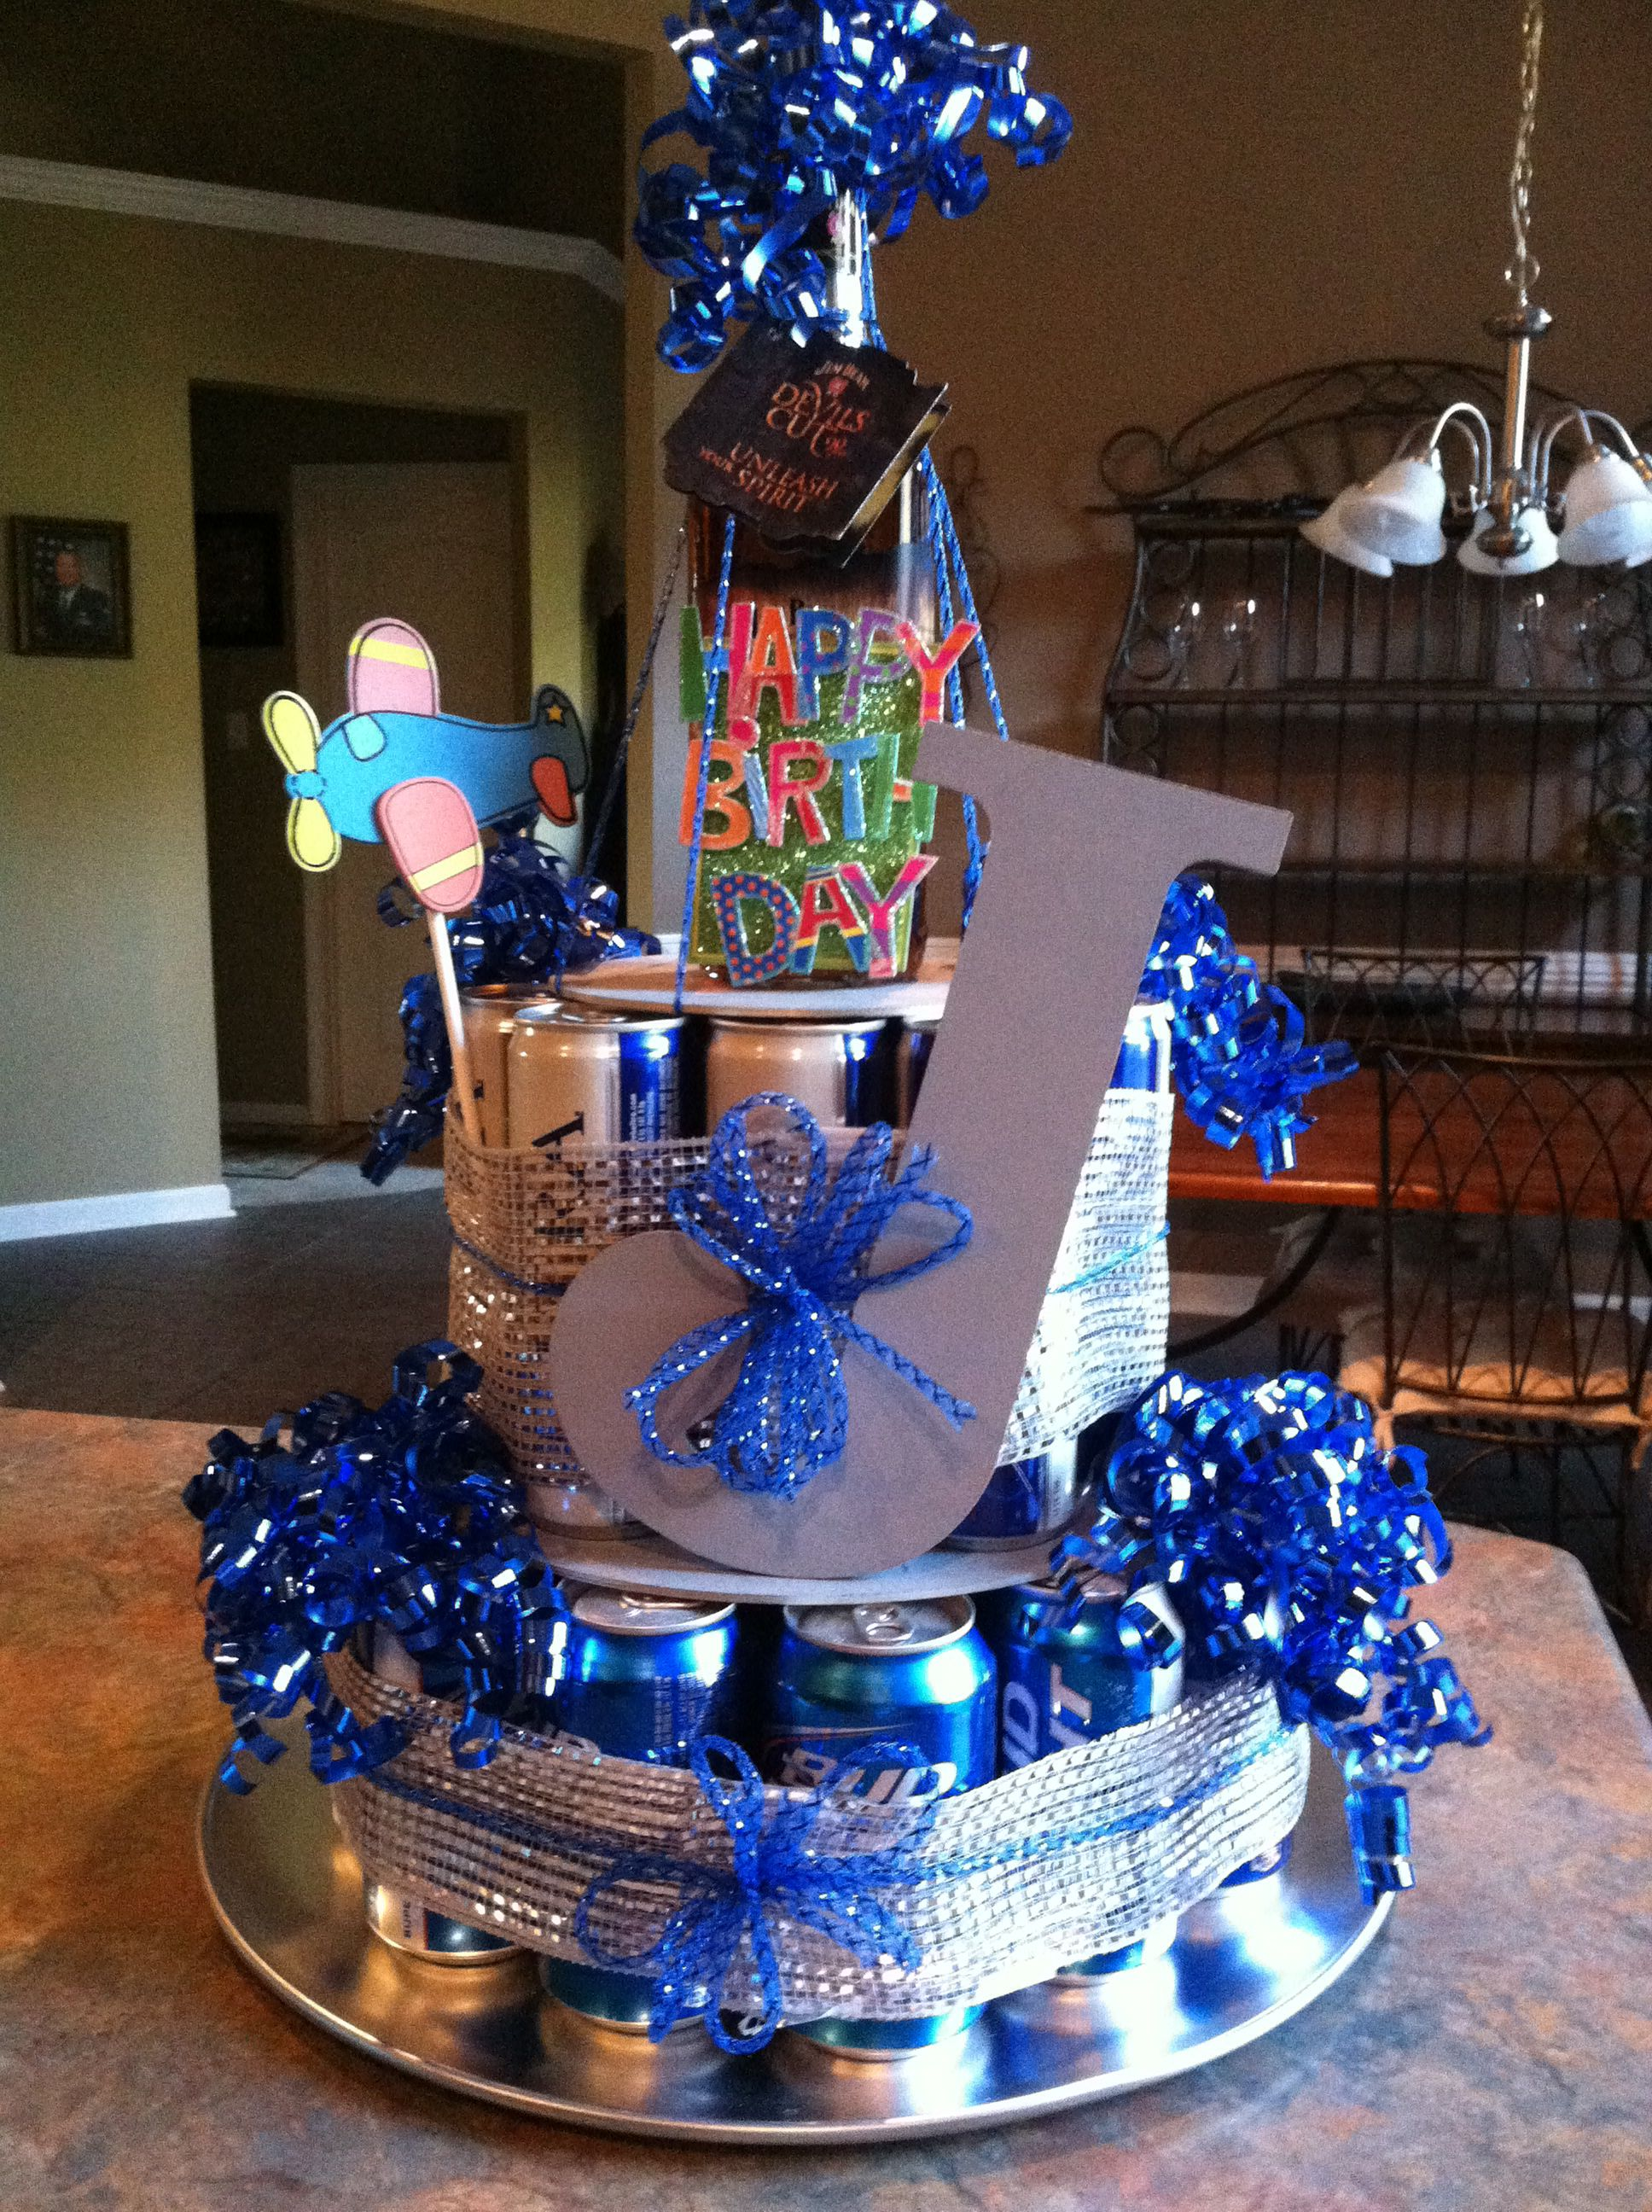 Beer Cake Beer Cake Gift Birthday Beer Cake Money